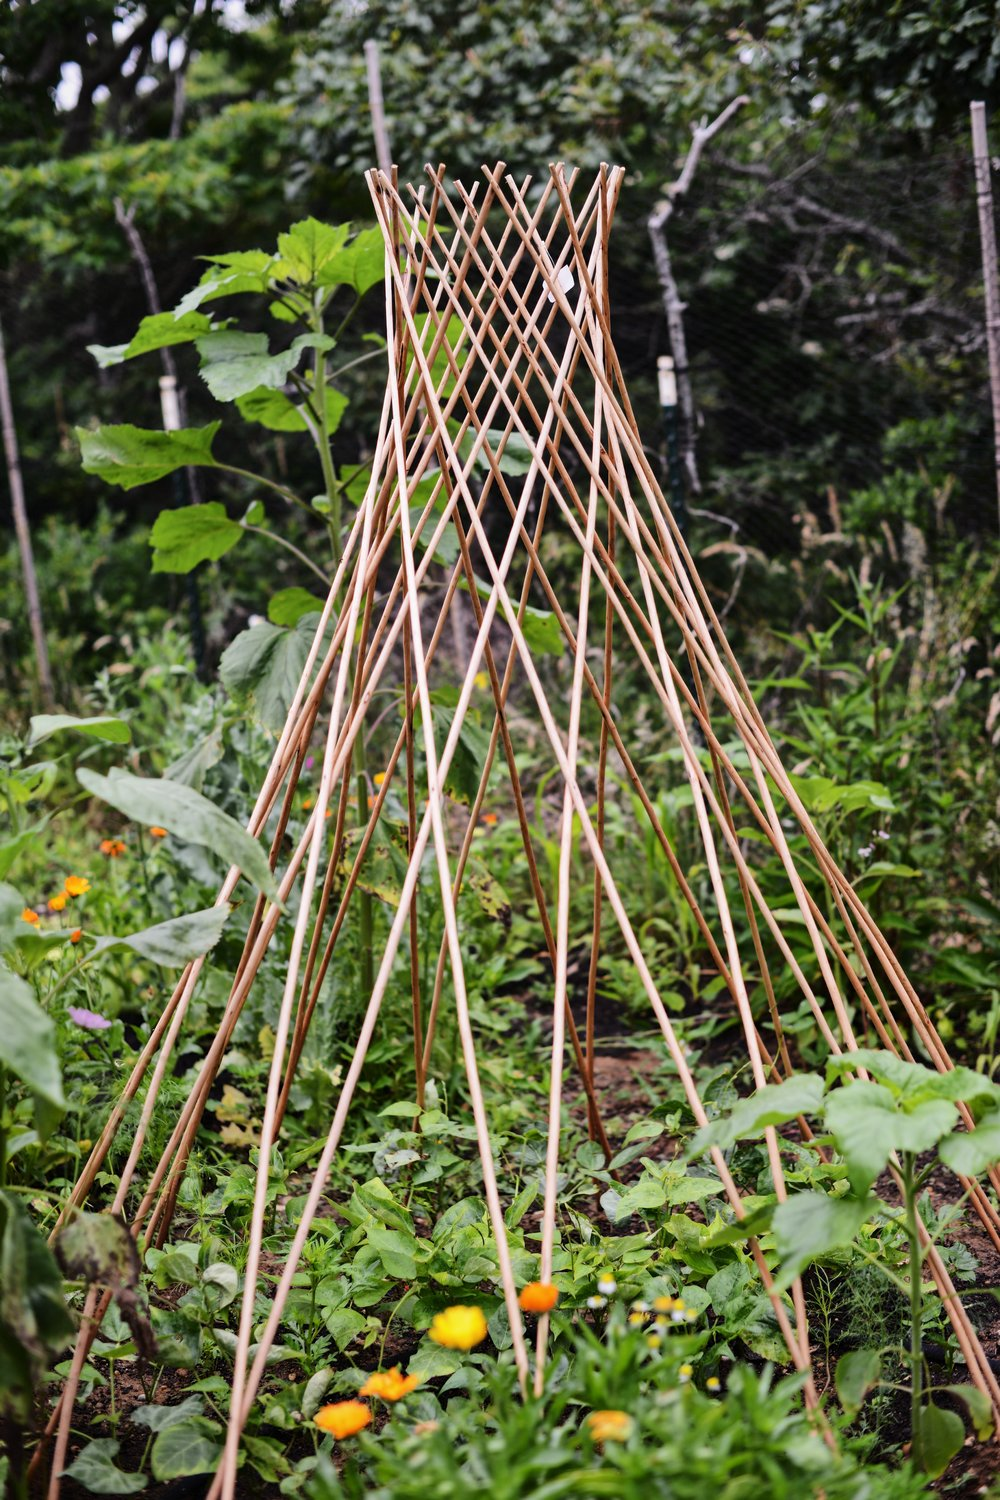 Heirloom Beans Will Cover This Large Expandable Natural Willow Trellis By Gardeners  Supply Co.